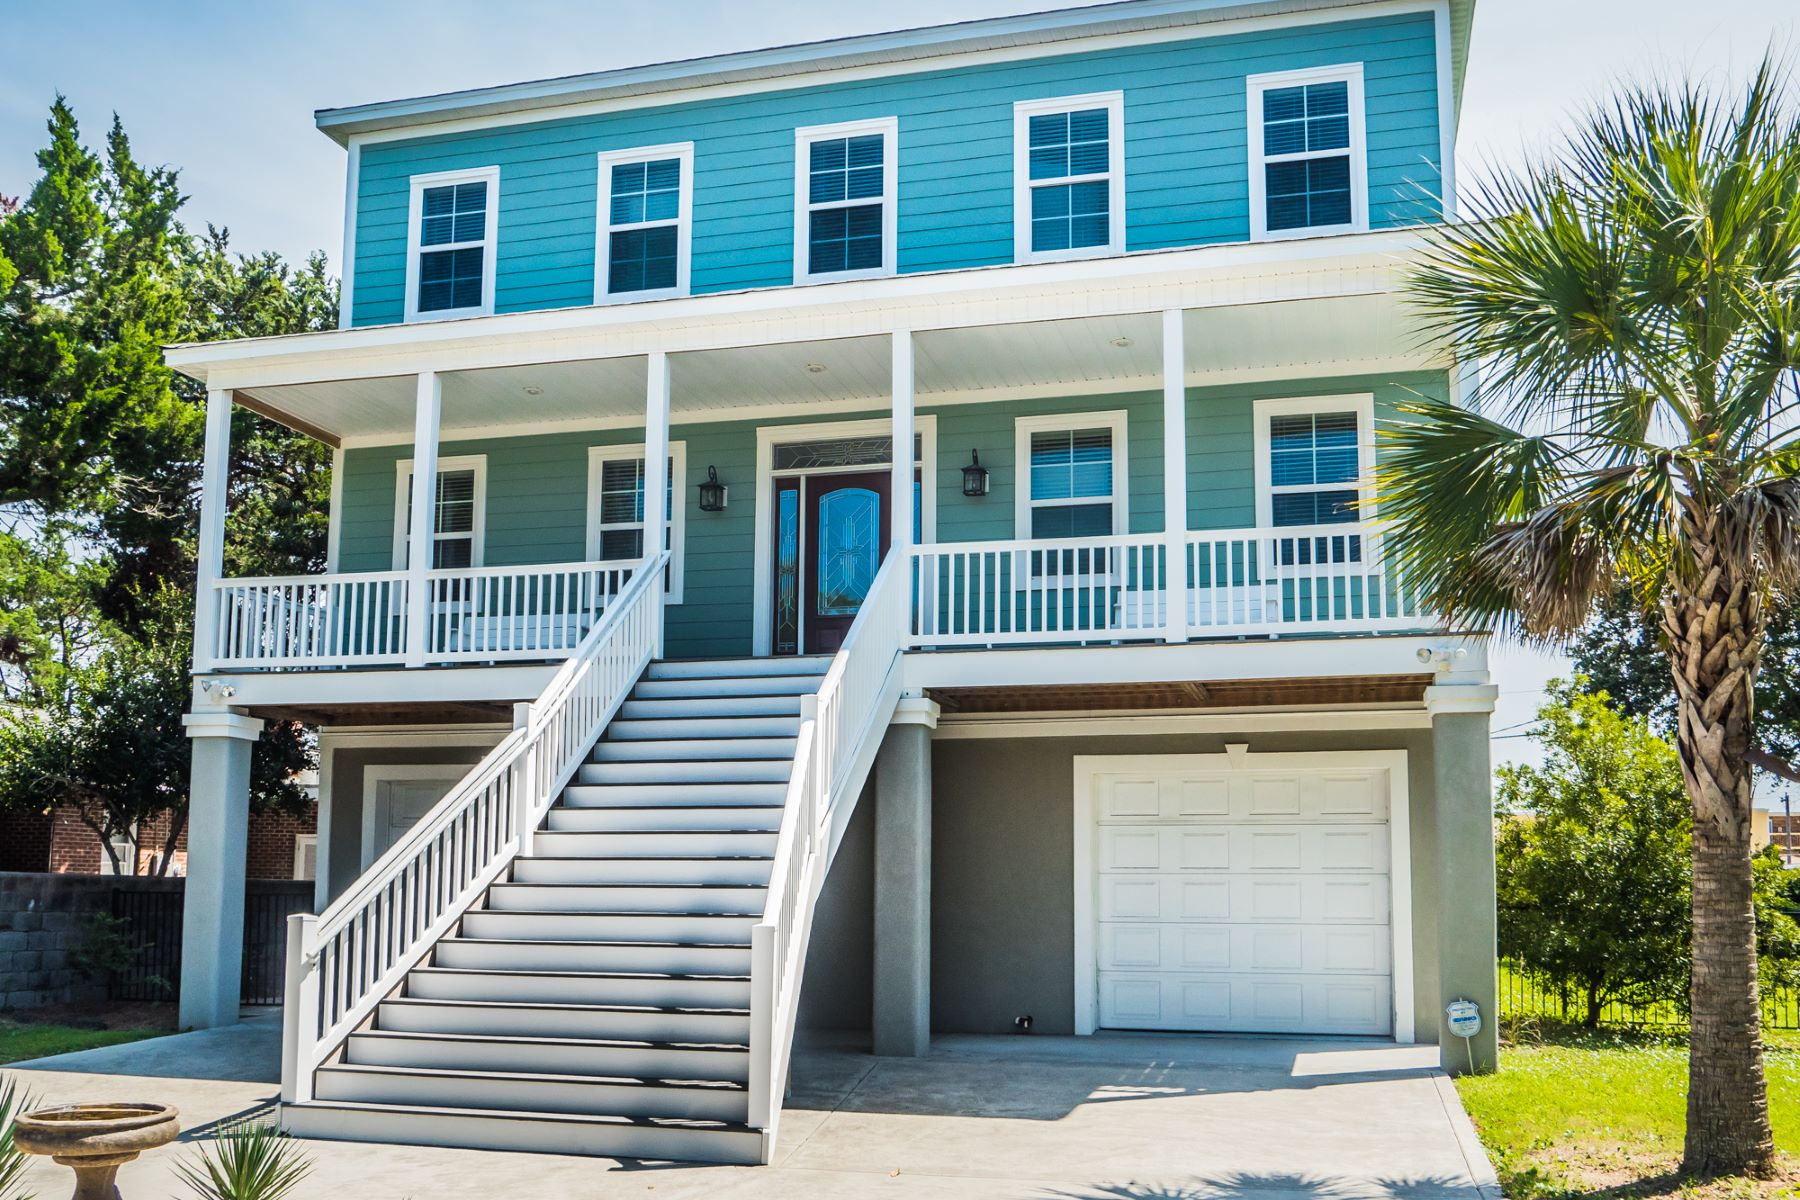 Single Family Home for Sale at Spectacular Raised Beach Home 1421 Holly Drive North Myrtle Beach, South Carolina, 29582 United States